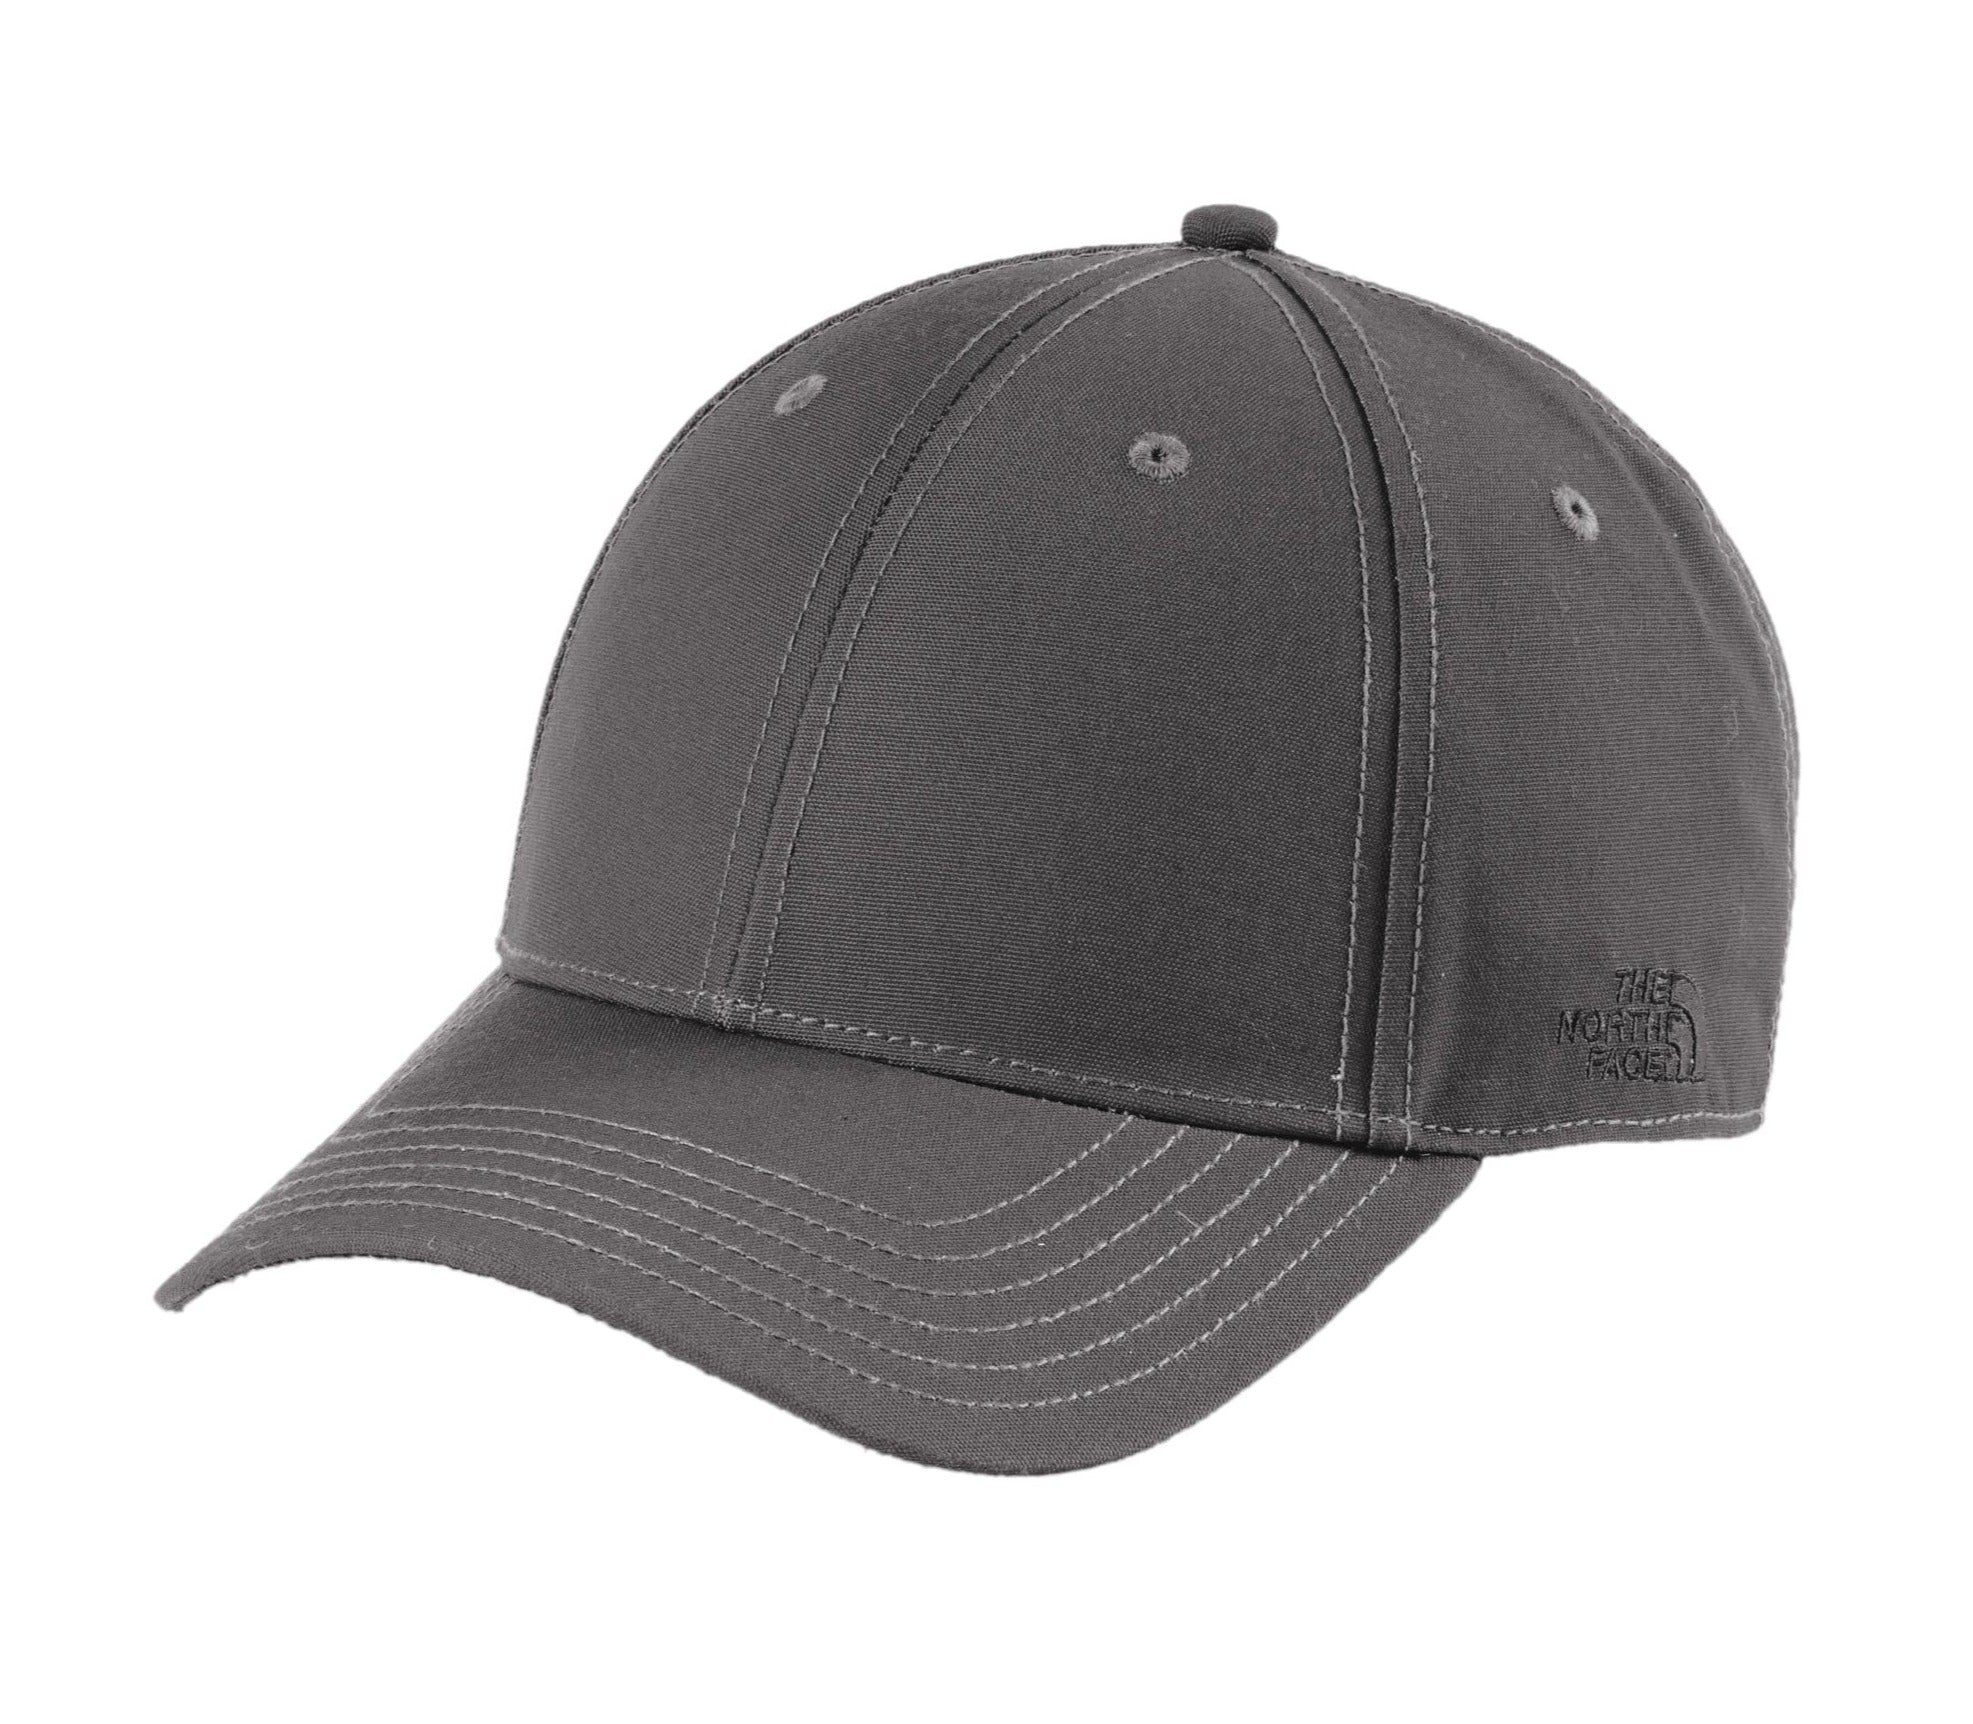 North Face Headwear One size / Asphalt grey The North Face® - Classic Cap